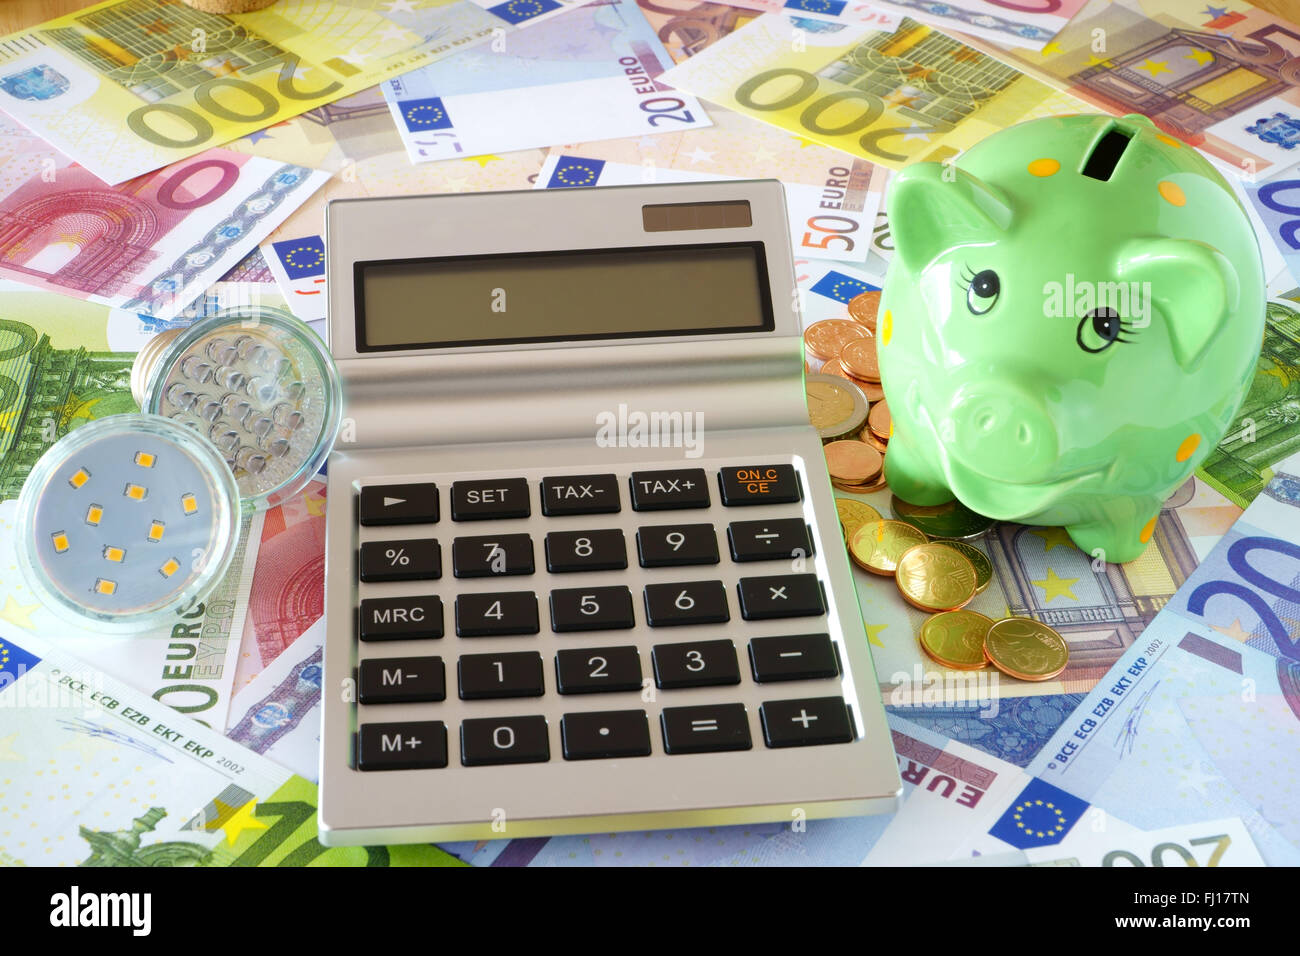 Pocket calculator with blank display, LED lamps, green piggy bank on a background made of euro banknotes and coins - Stock Image